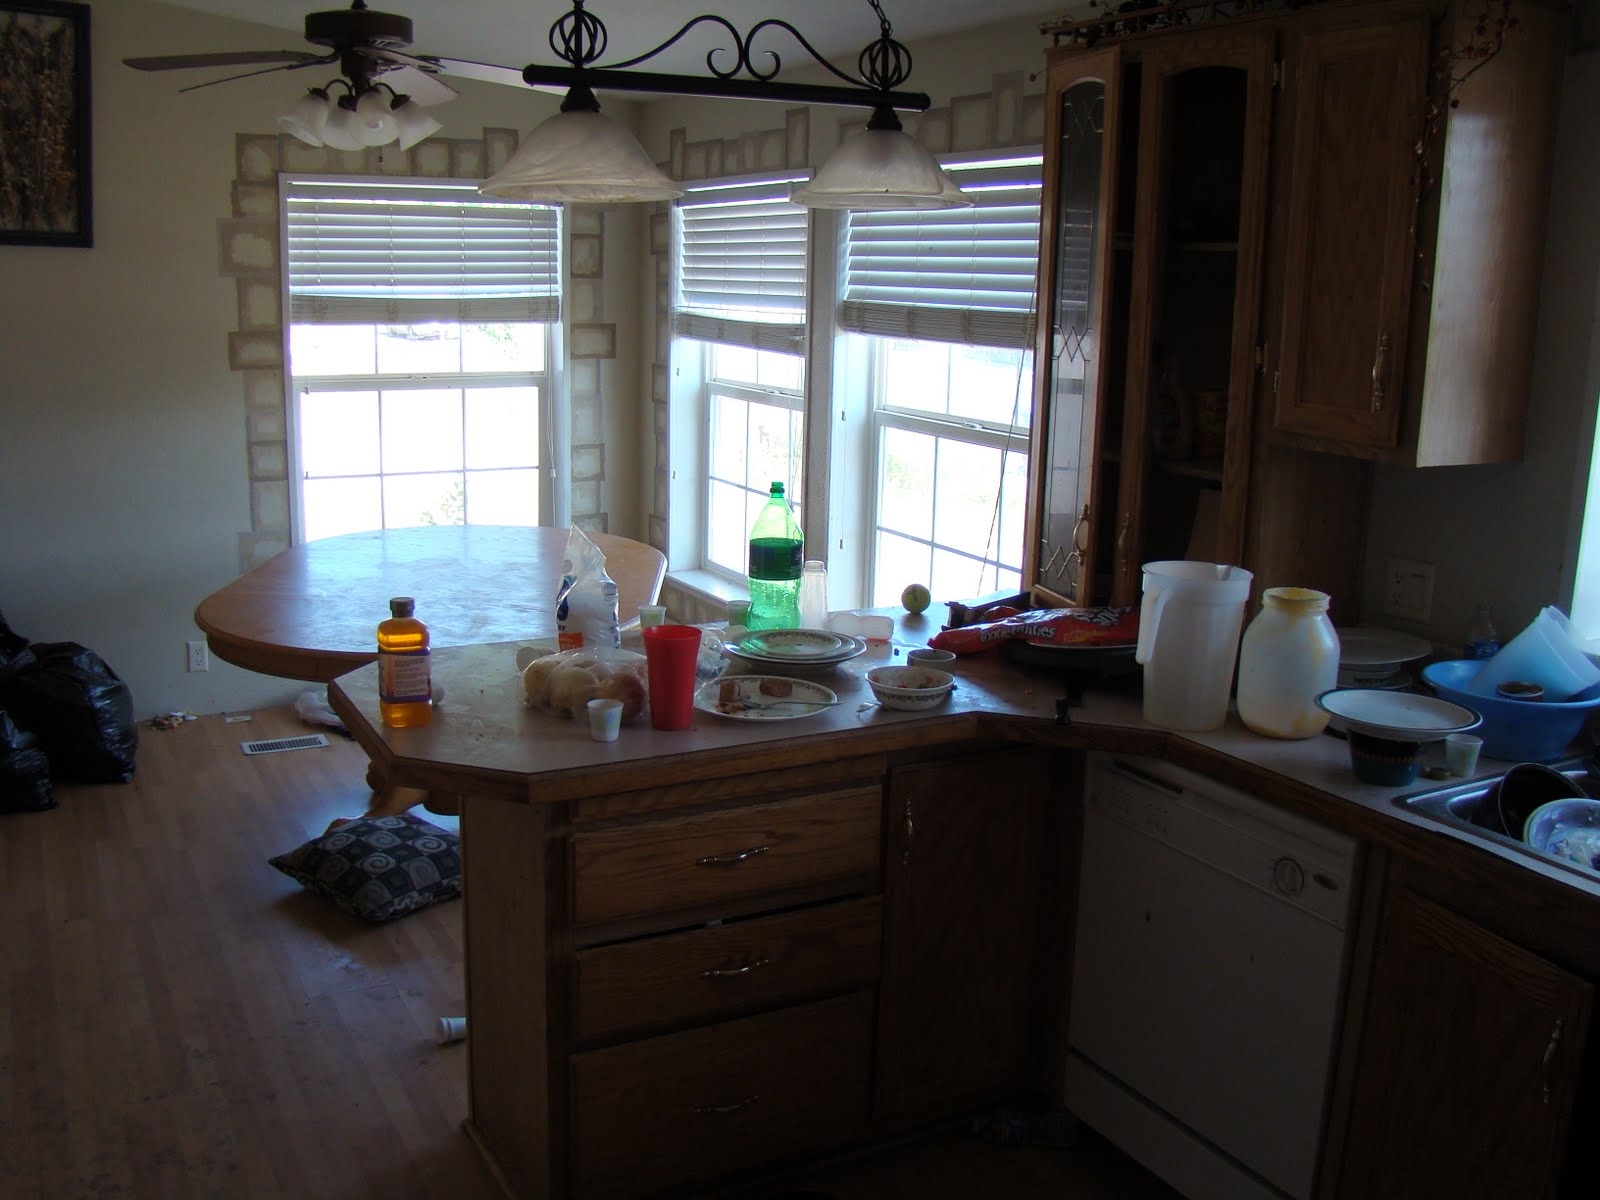 Maggots On Kitchen Floor The Steinmetz Family Blog Before And After Landlord Horror Story